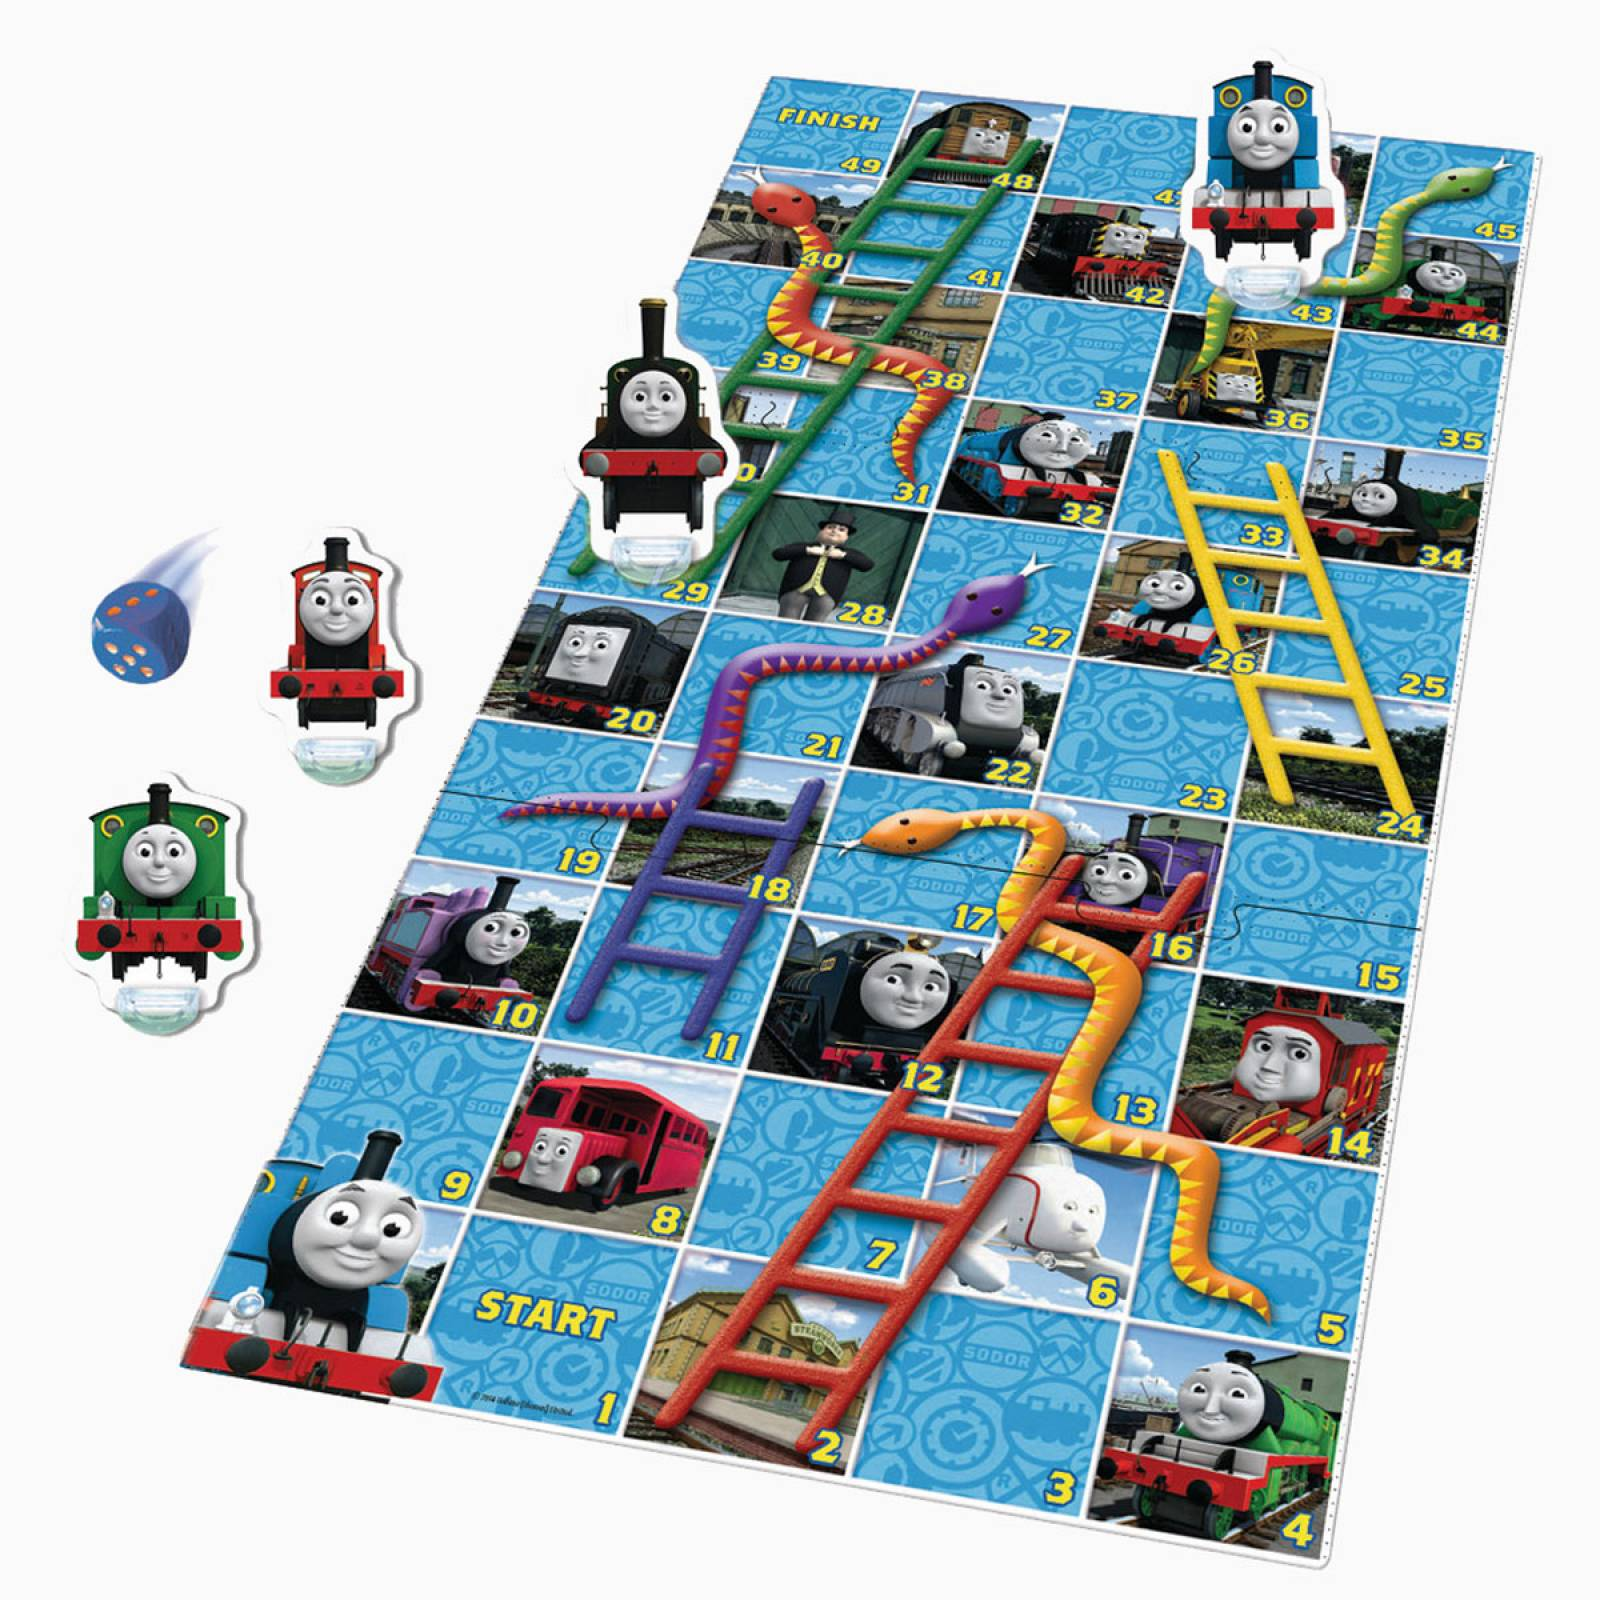 Thomas & Friends Snakes And Ladders Game 3+ thumbnails